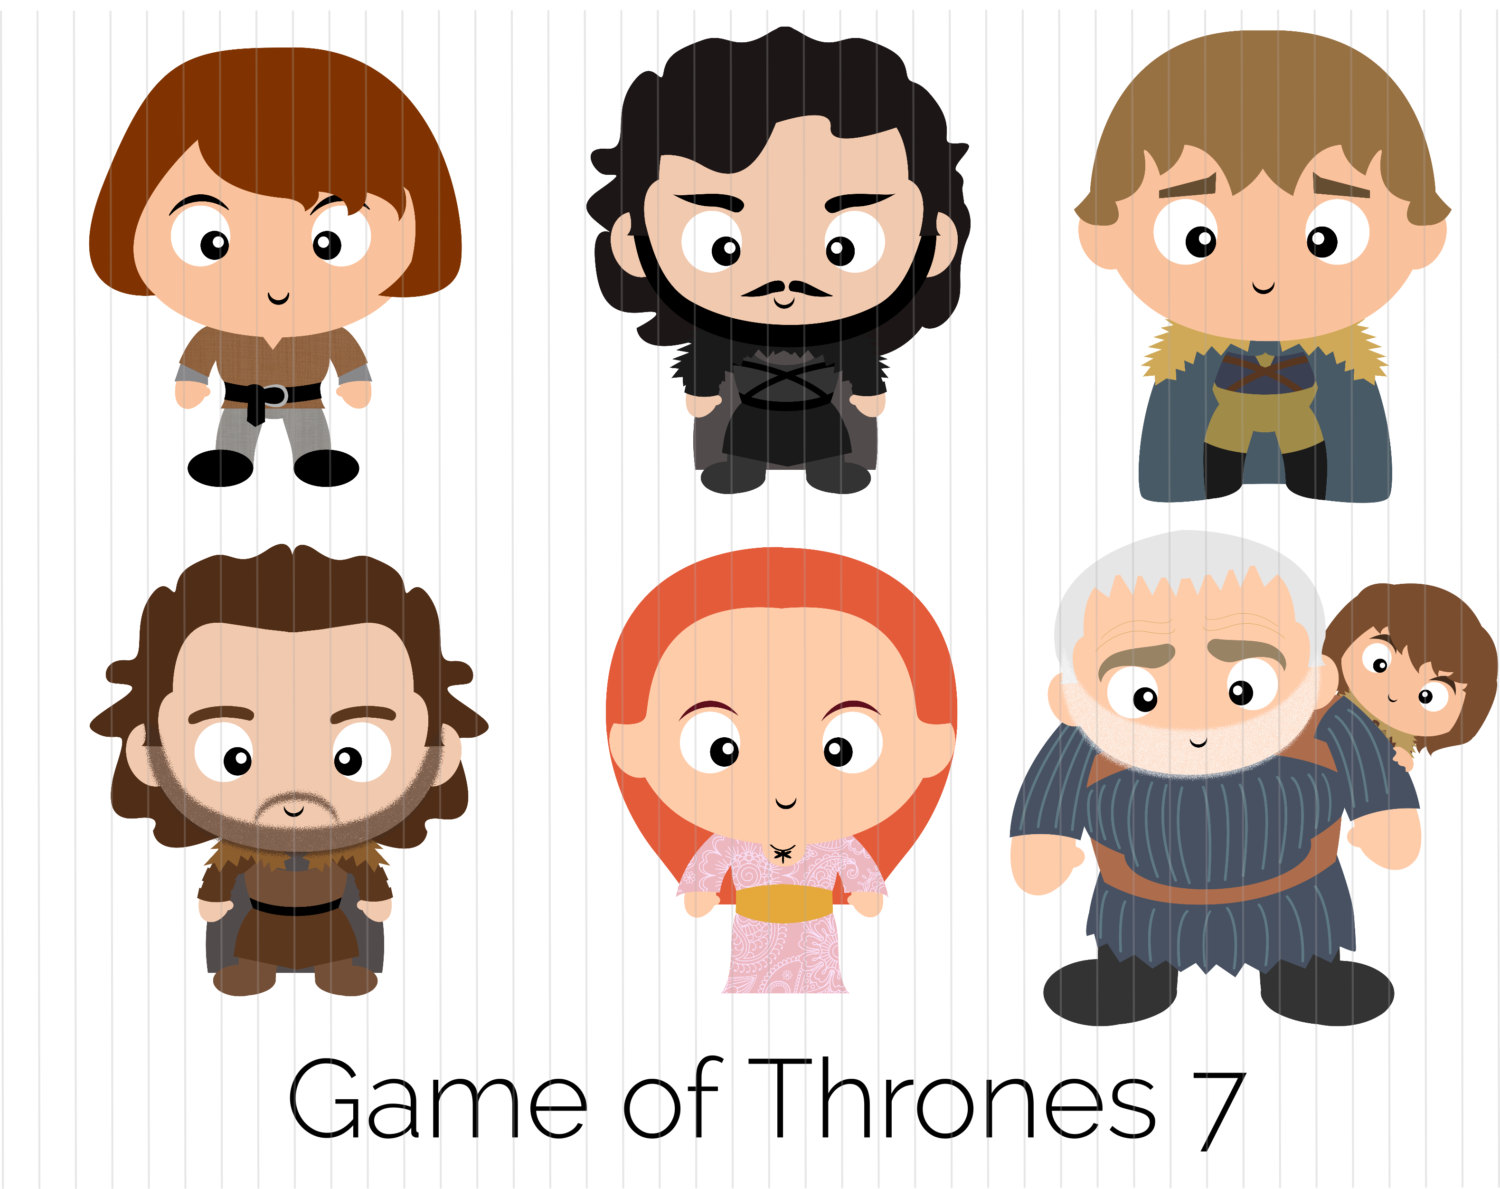 Cute Funko Pop Game of Thrones Clipart Daario Naharis.